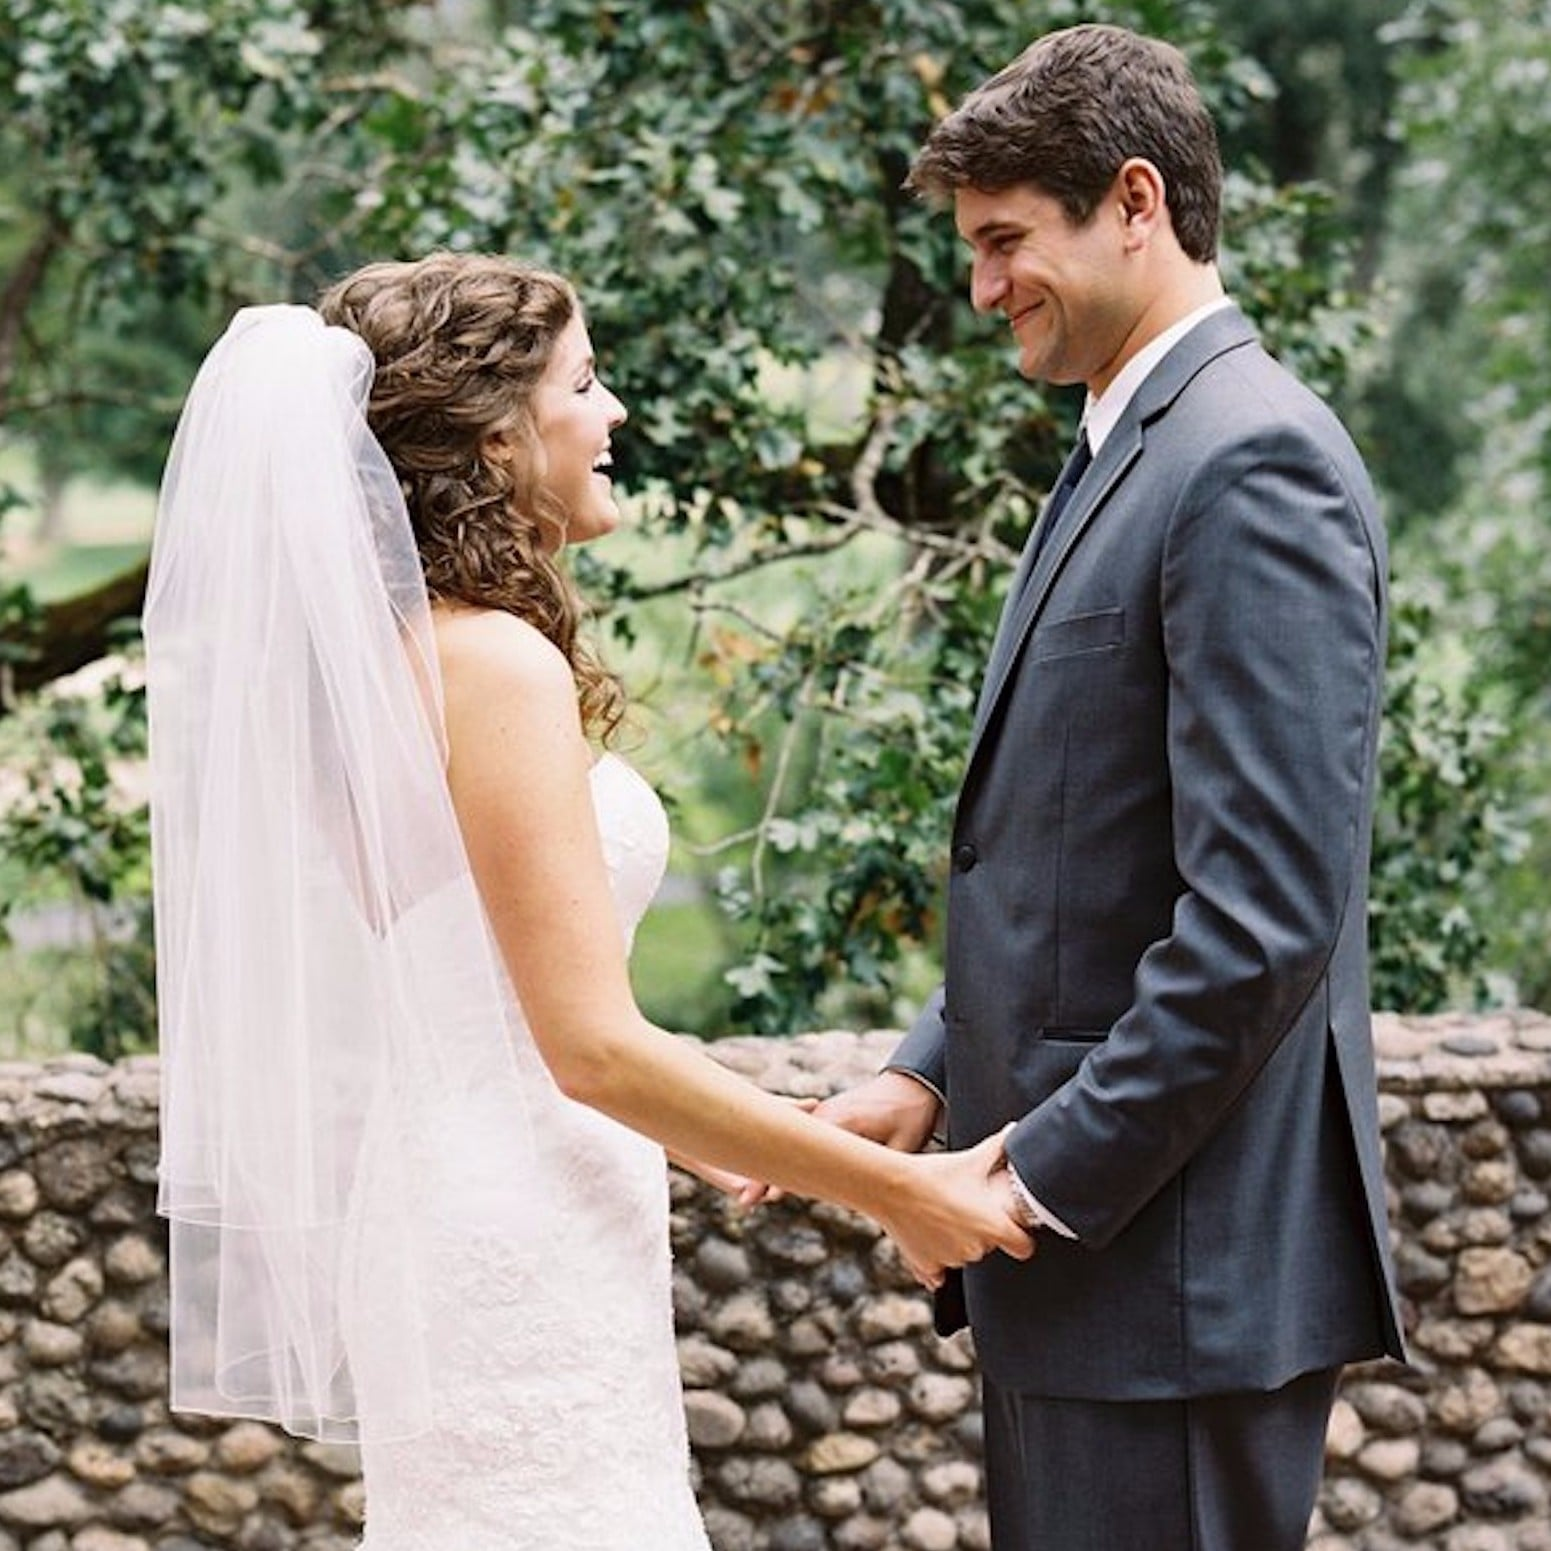 First look wedding photos pros and cons popsugar love sex junglespirit Image collections